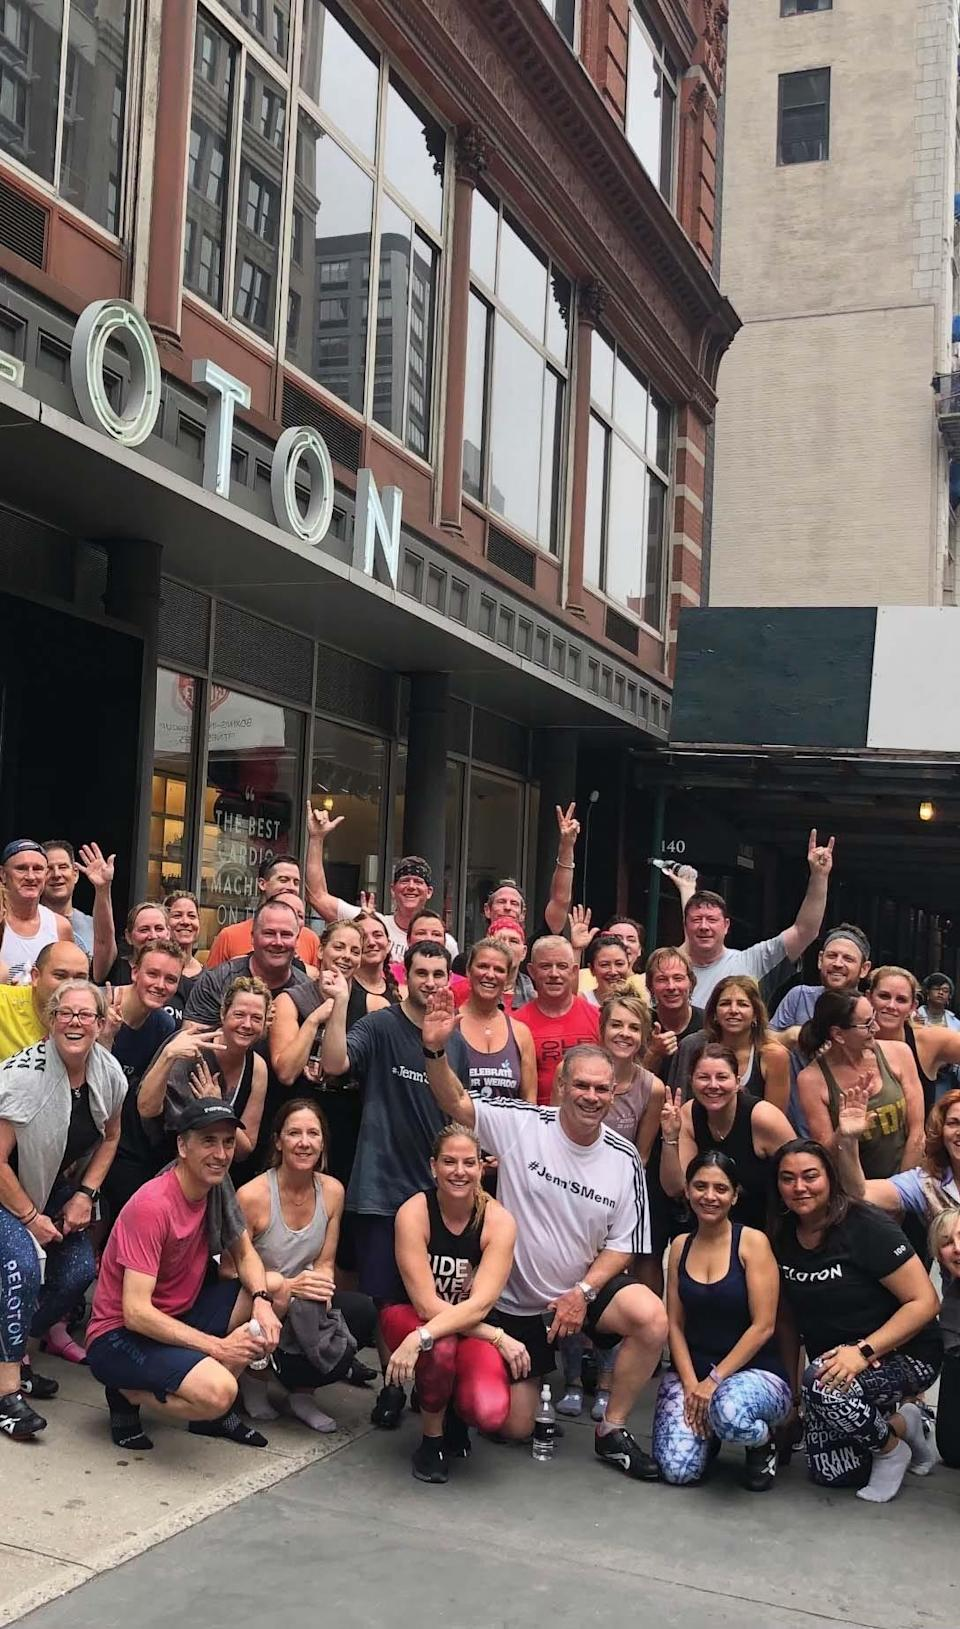 Demarest, NJ, Jenn Sherman has been a Peloton instructor since day one.Sherman at annual Peloton Homecoming in 2019 with other Peloton members outside of the former Peloton Studio in NYC